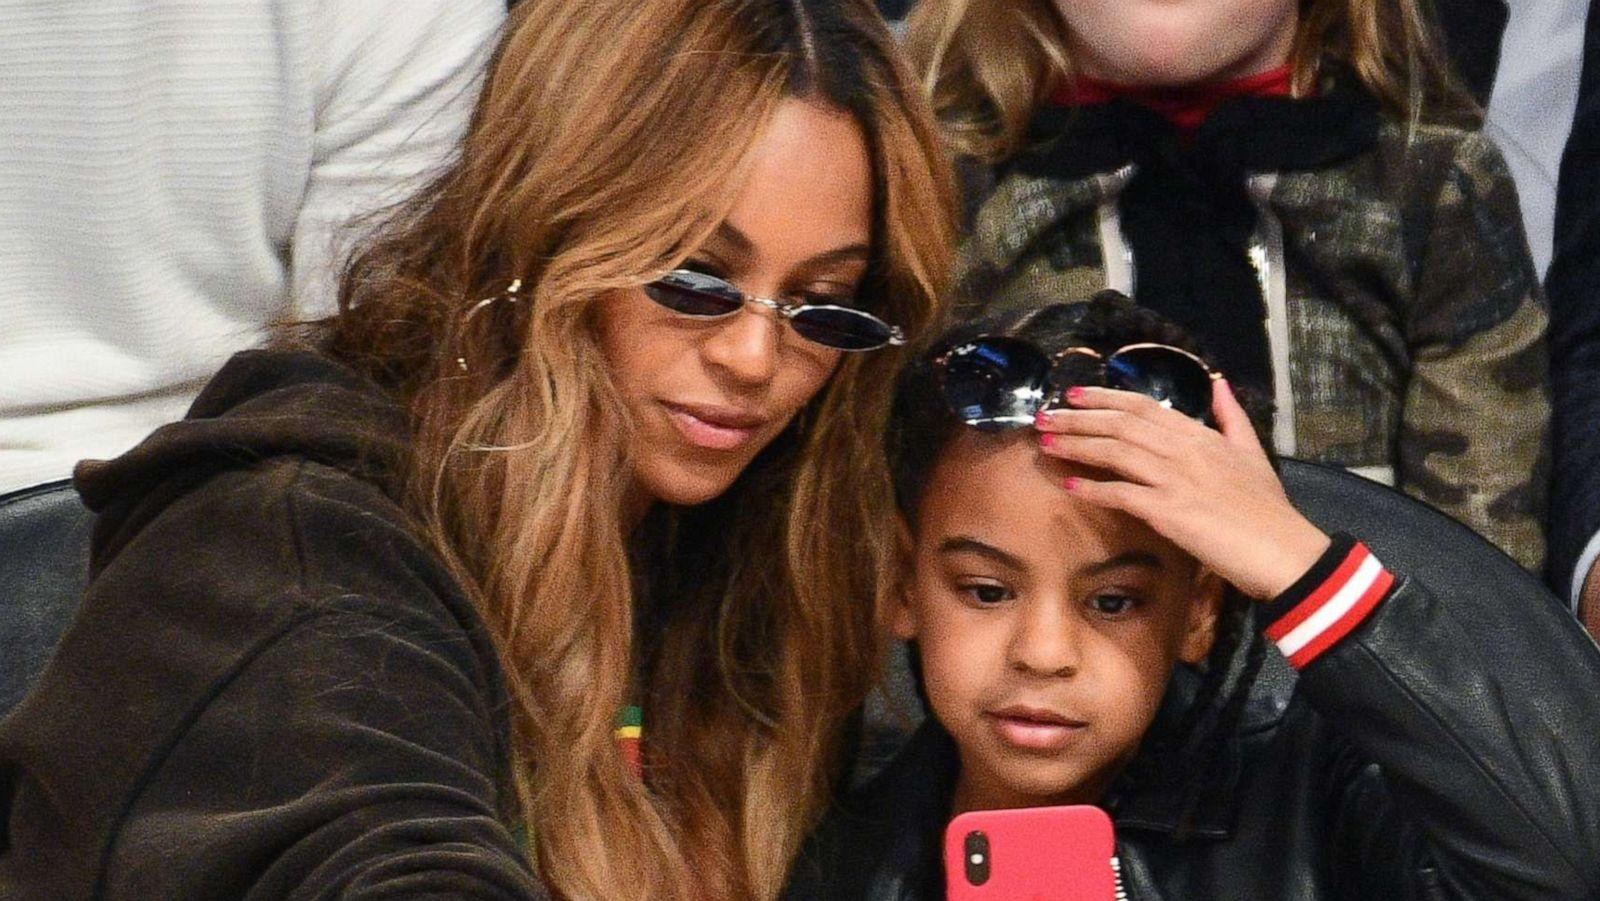 Beyonce Reportedly 'Very Involved' At Blue Ivy's School - She's Really 'Hands-On' Despite Her Huge Fame!